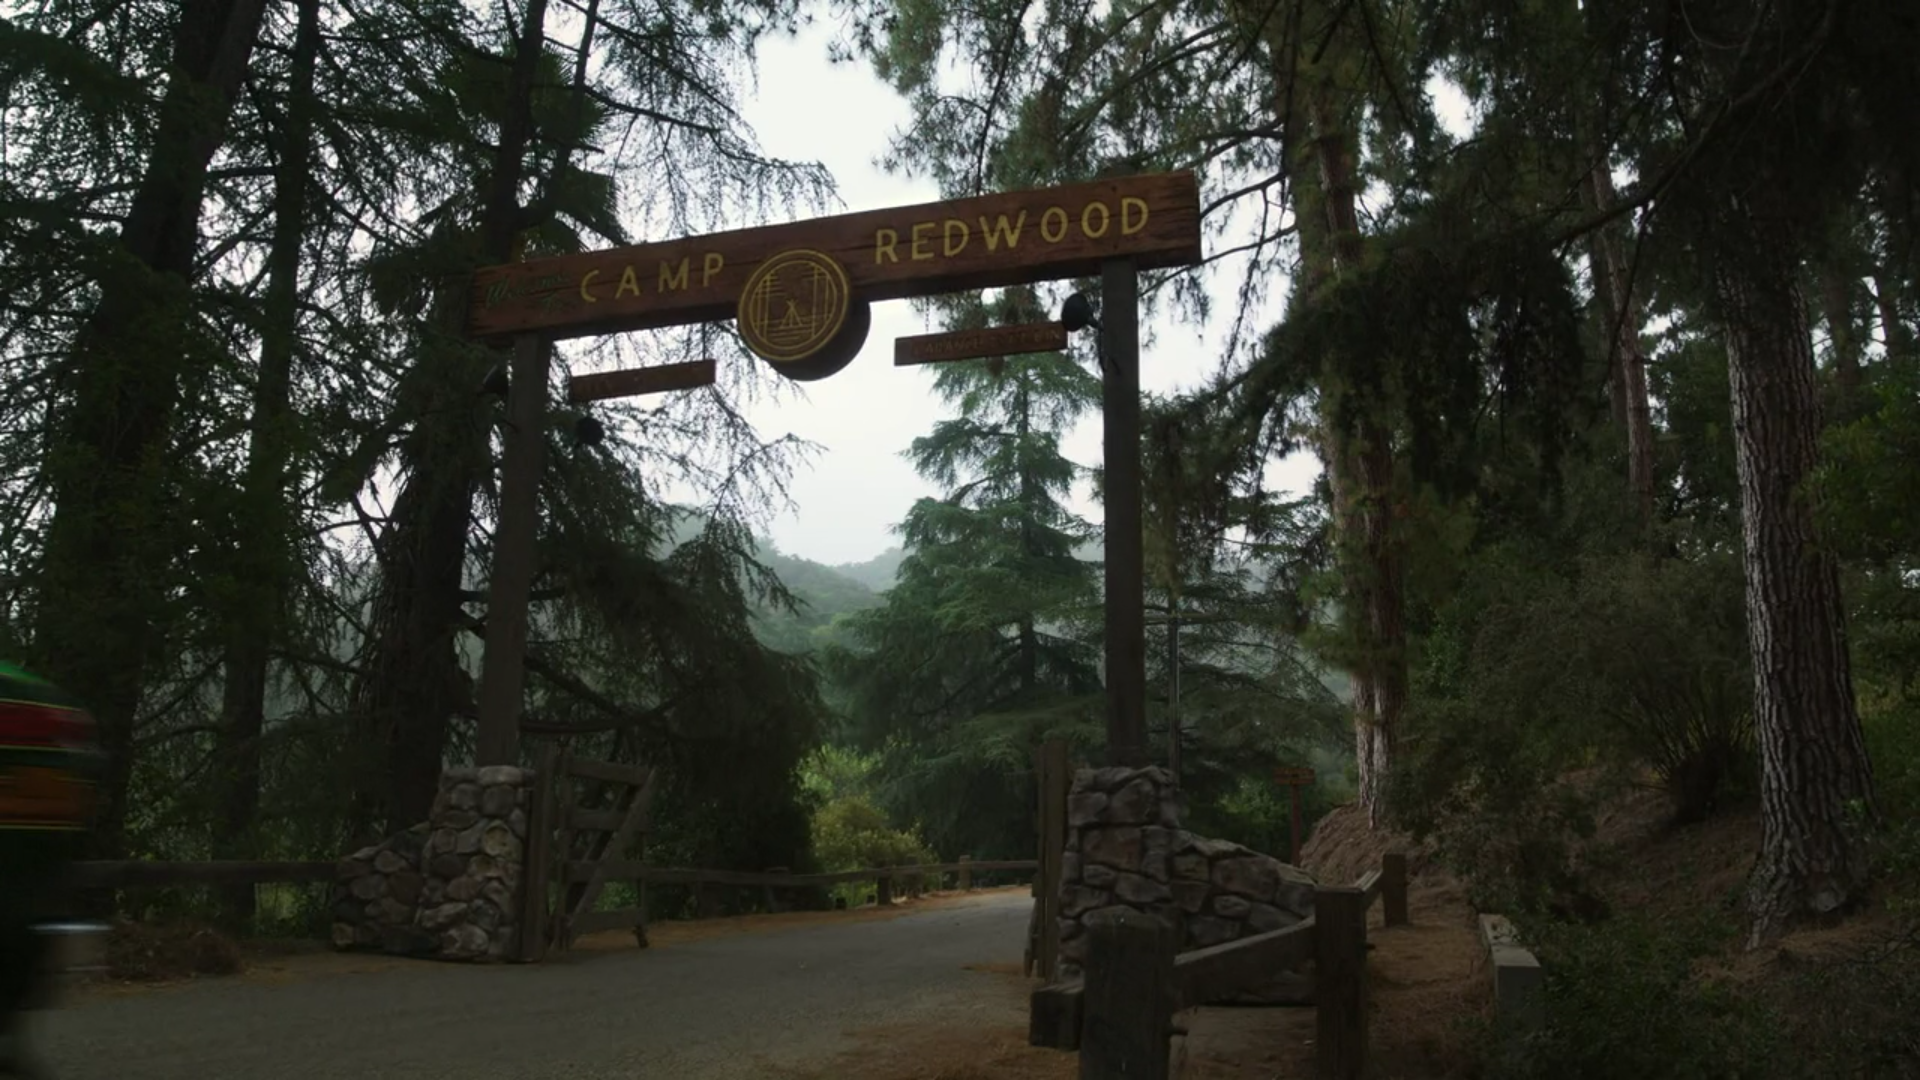 Camp Redwood (location)